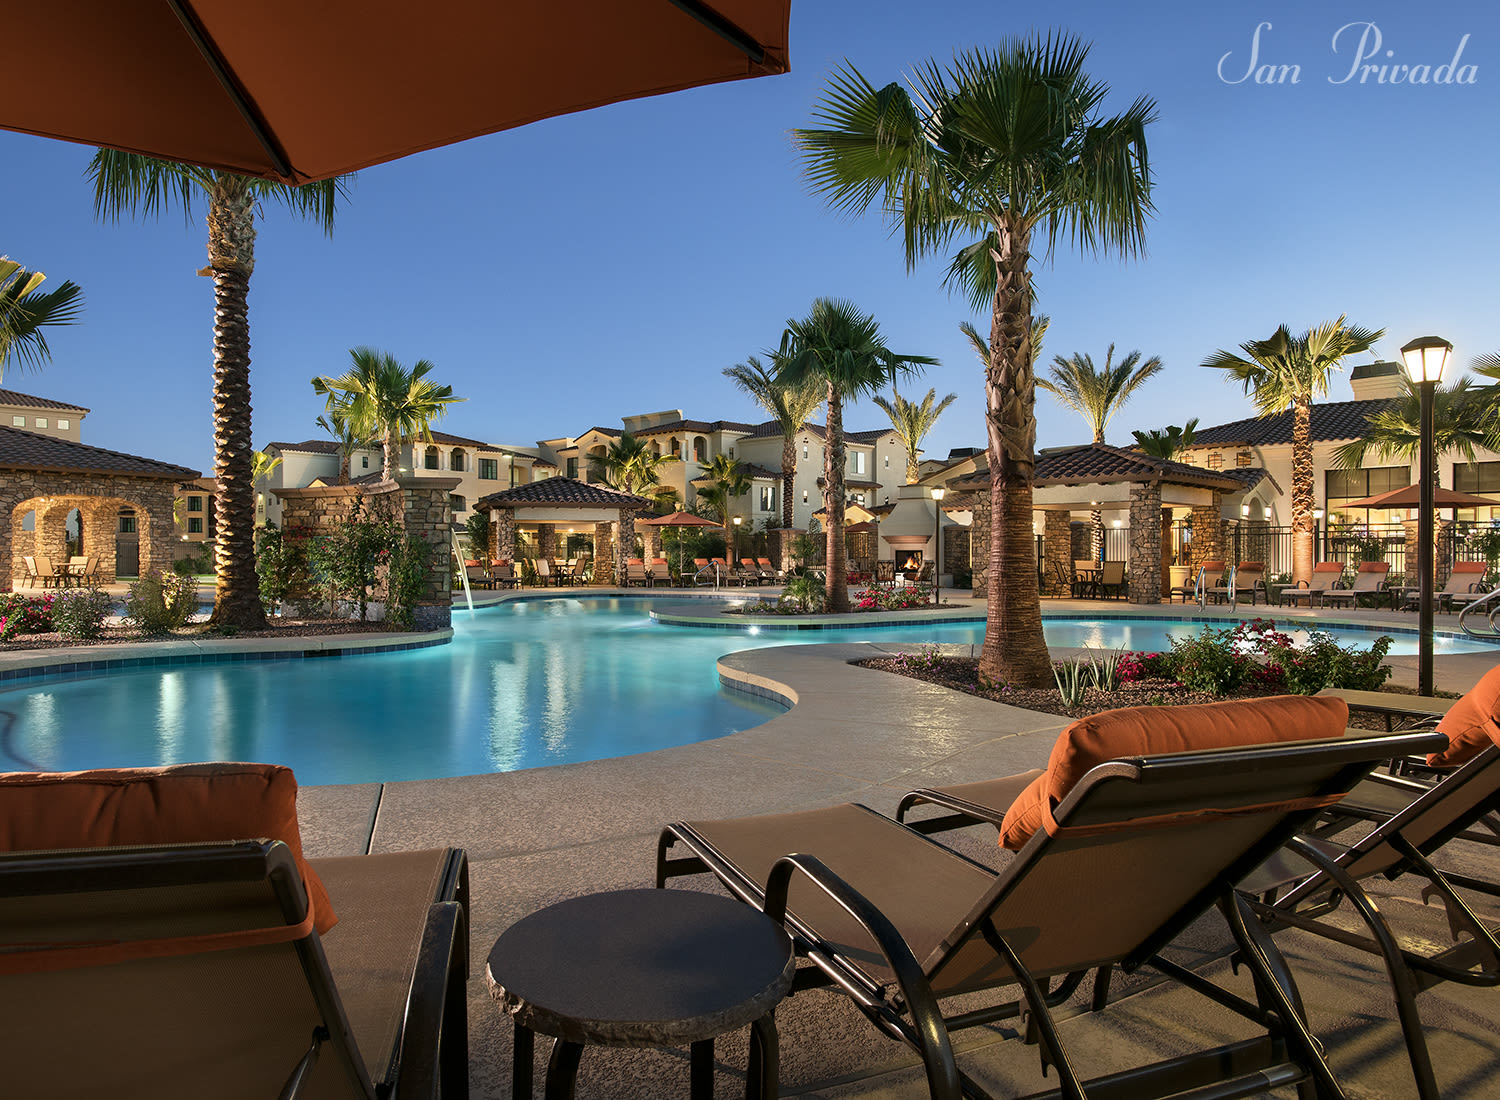 San Privada apartments in Gilbert, Arizona